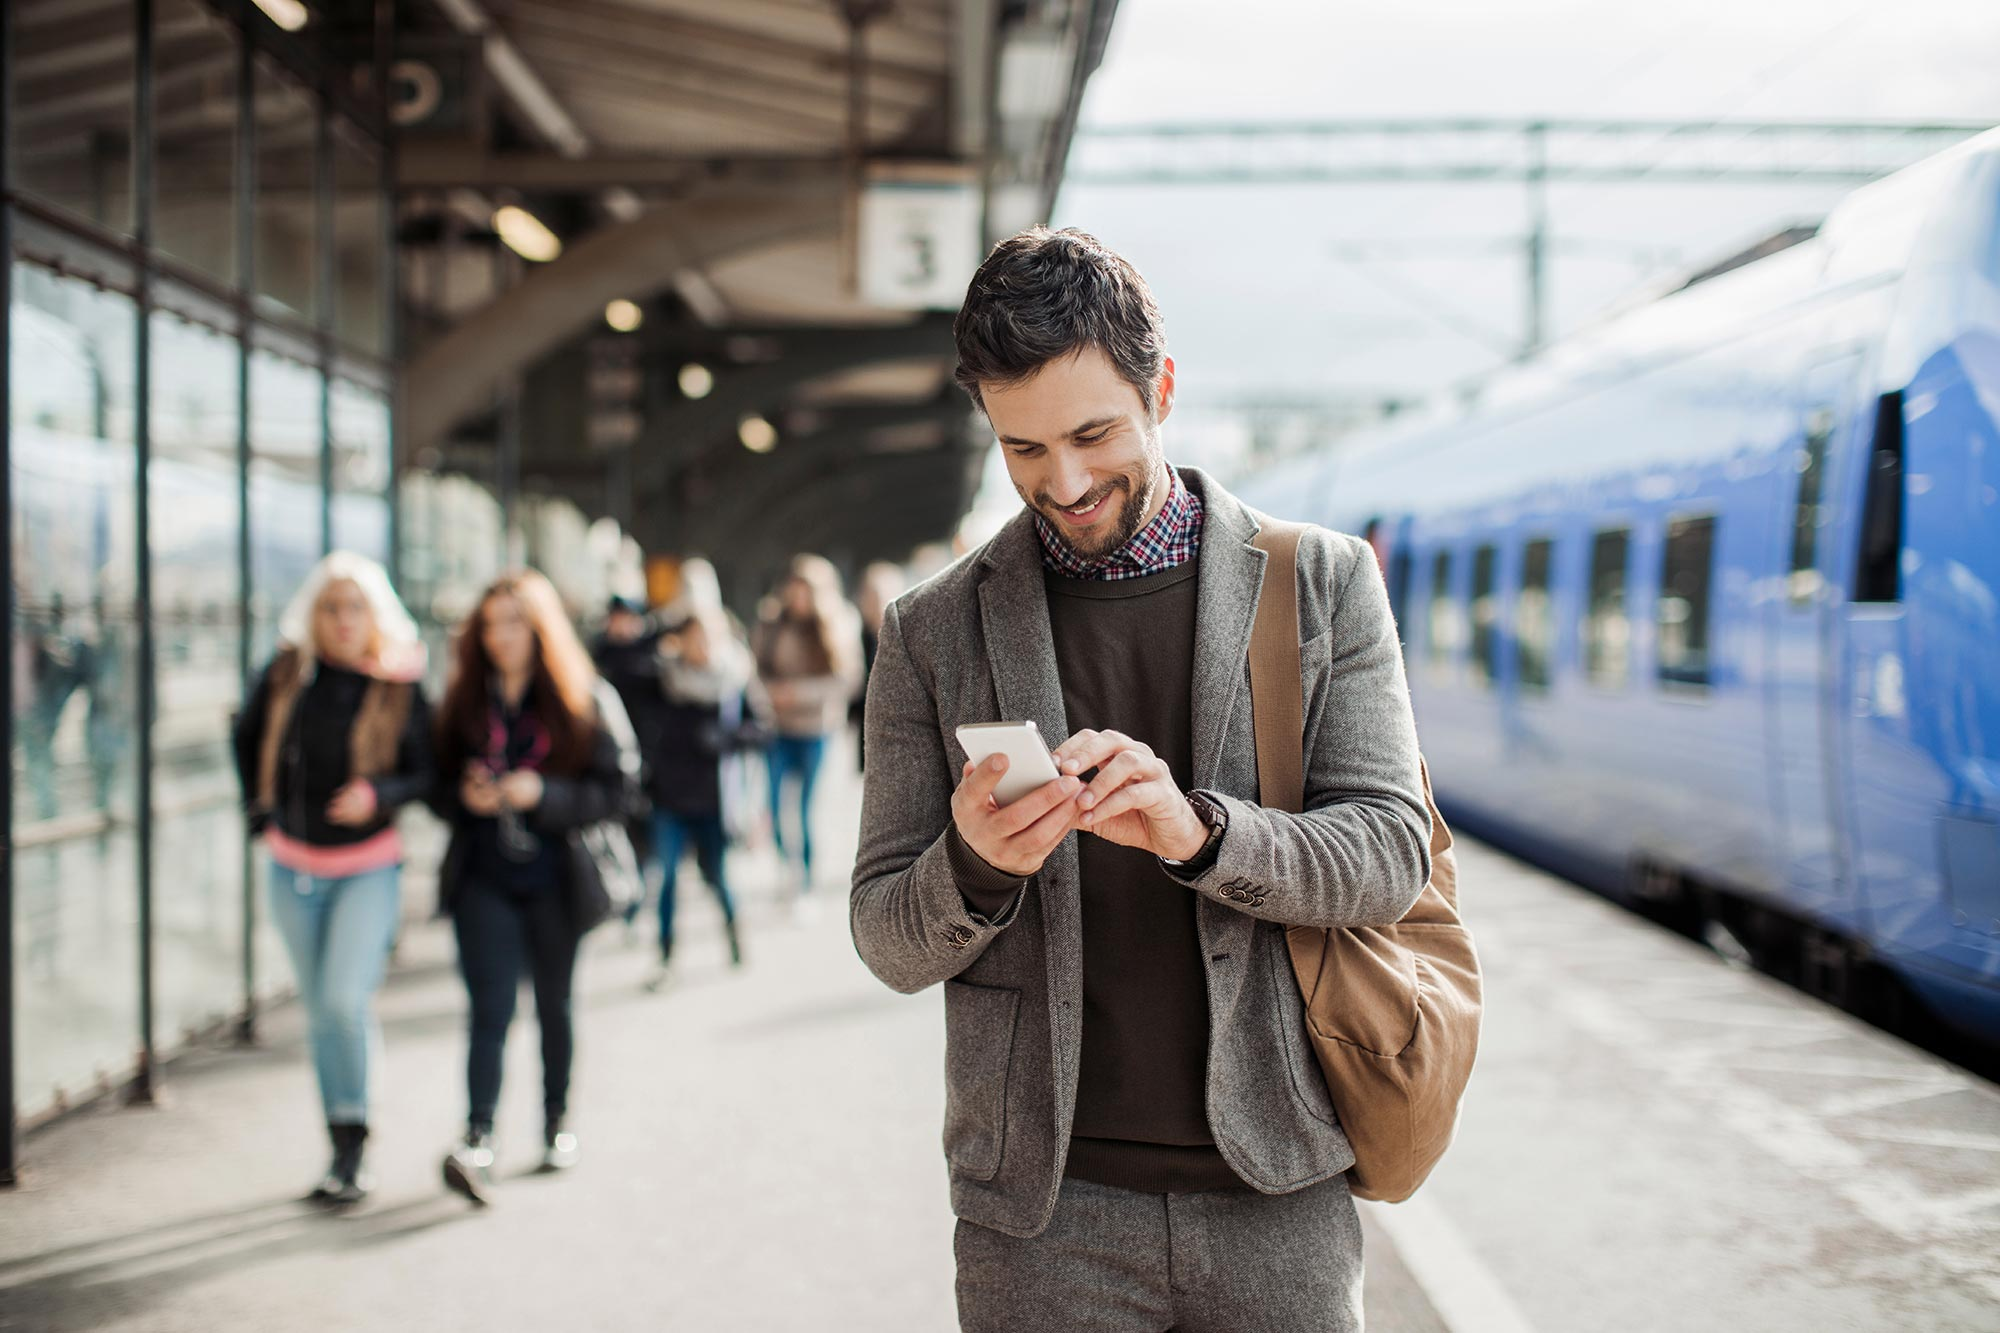 businessman-using-mobile-phone-at-train-station